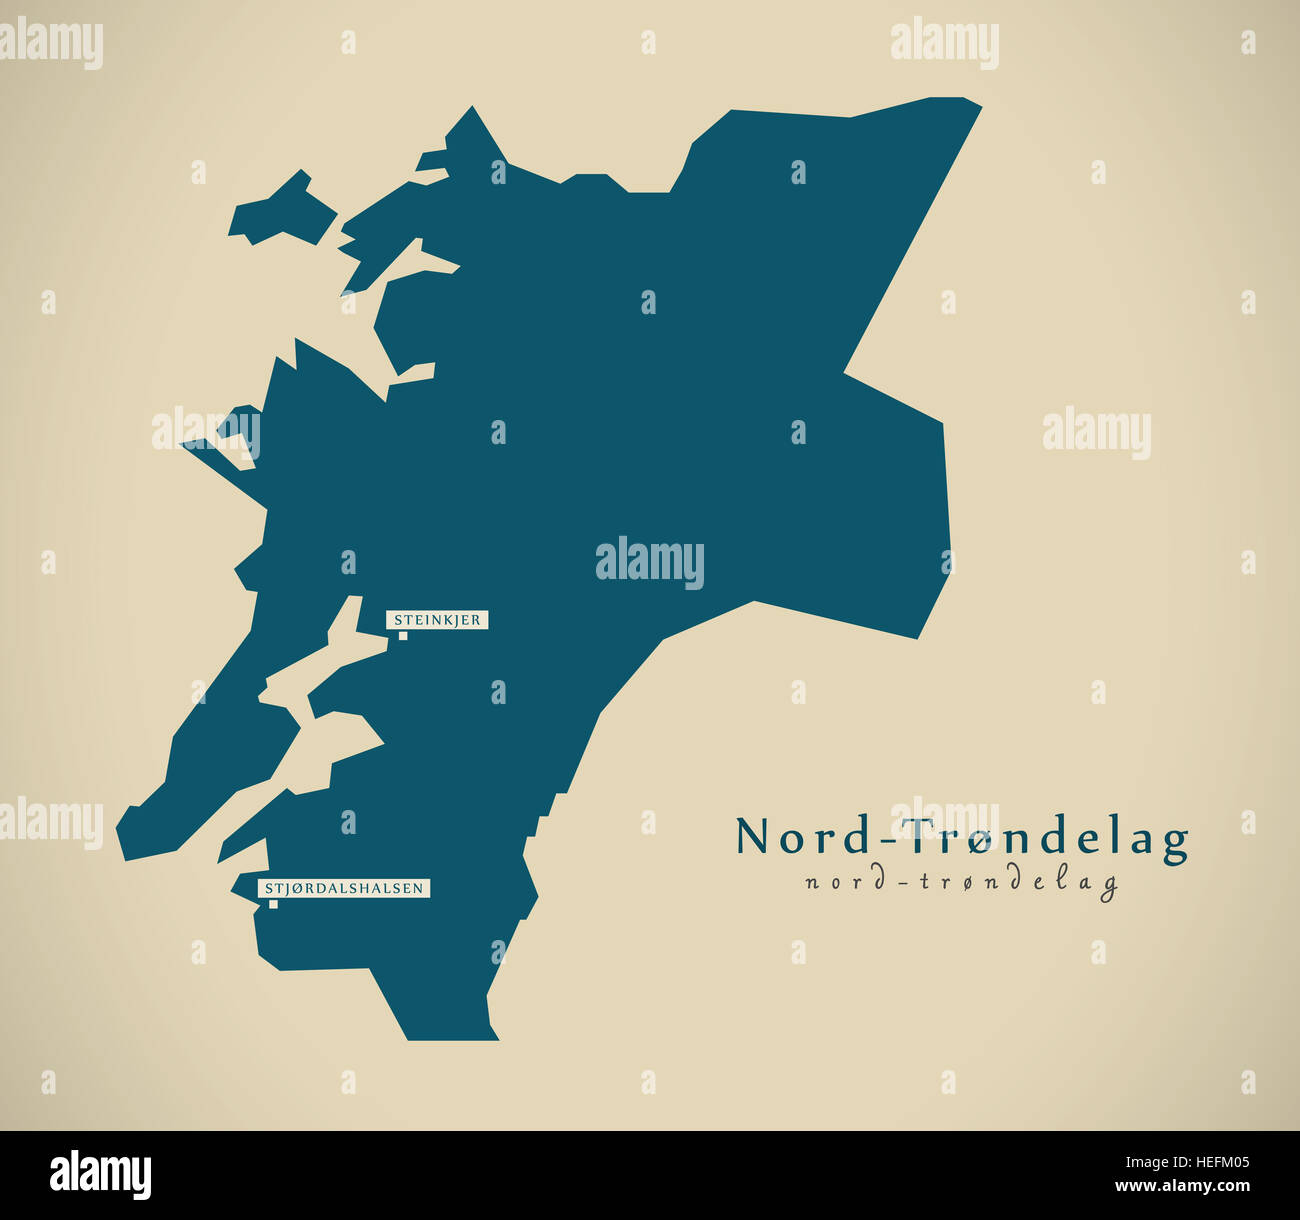 Modern Map - Nord Trondelag Norway NO illustration - Stock Image